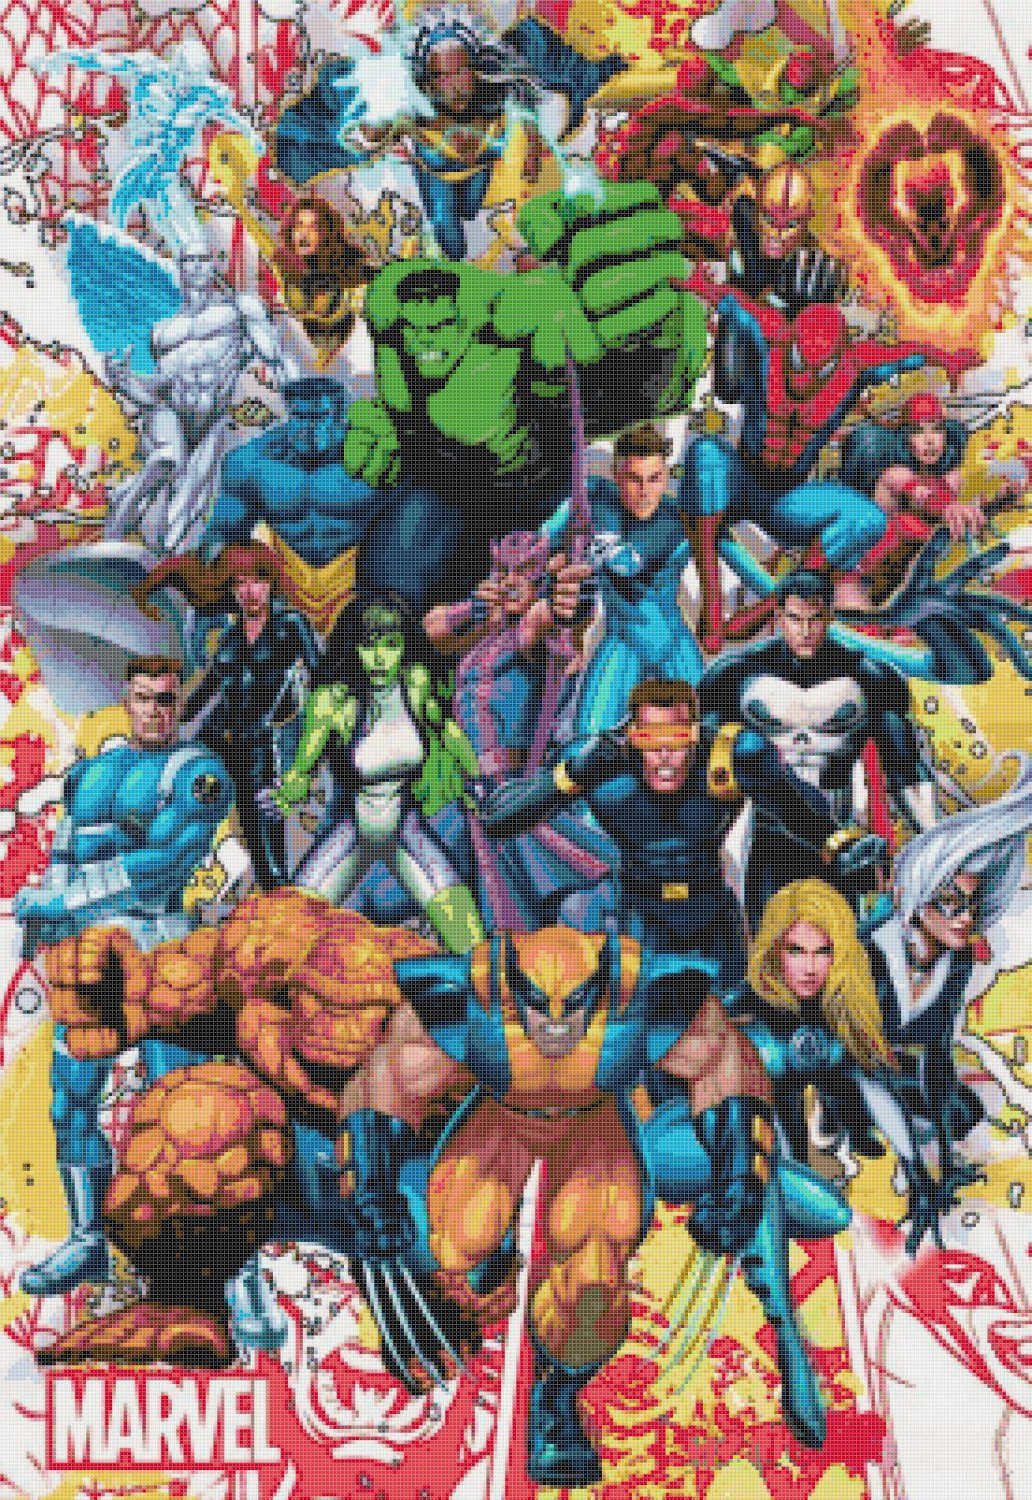 counted cross stitch pattern Marvel superheroes 276 x 401 stitches E796